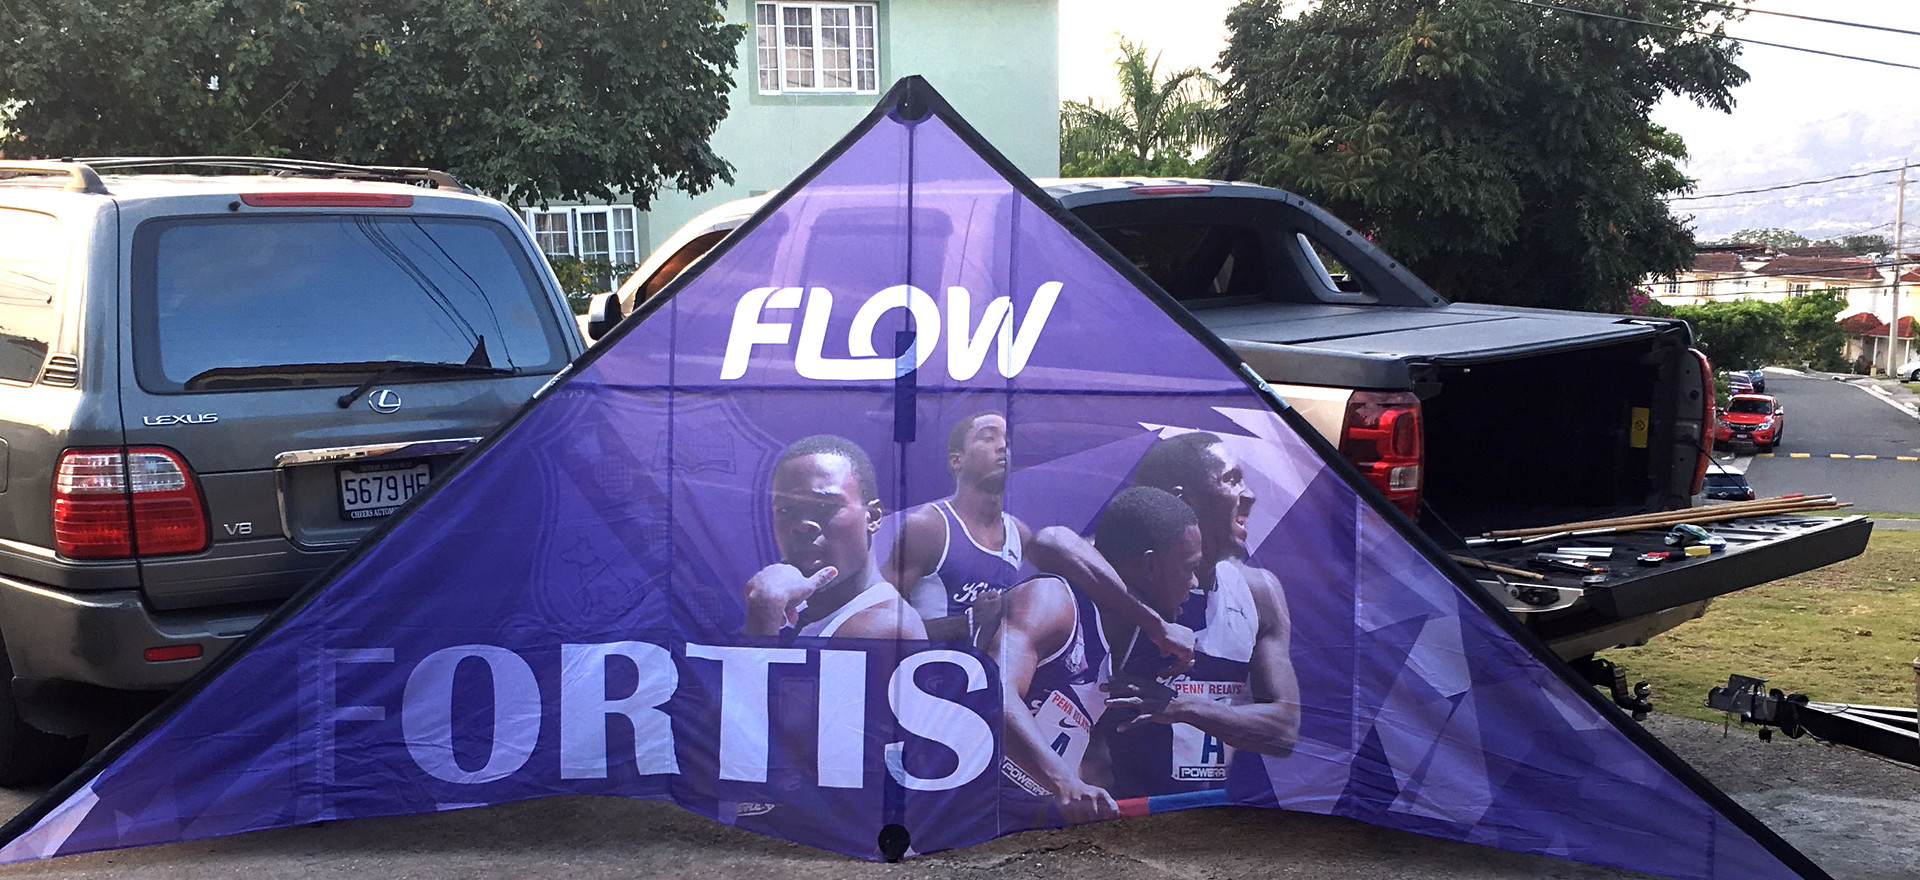 Custom Ad-Kite - Flow.Fortis